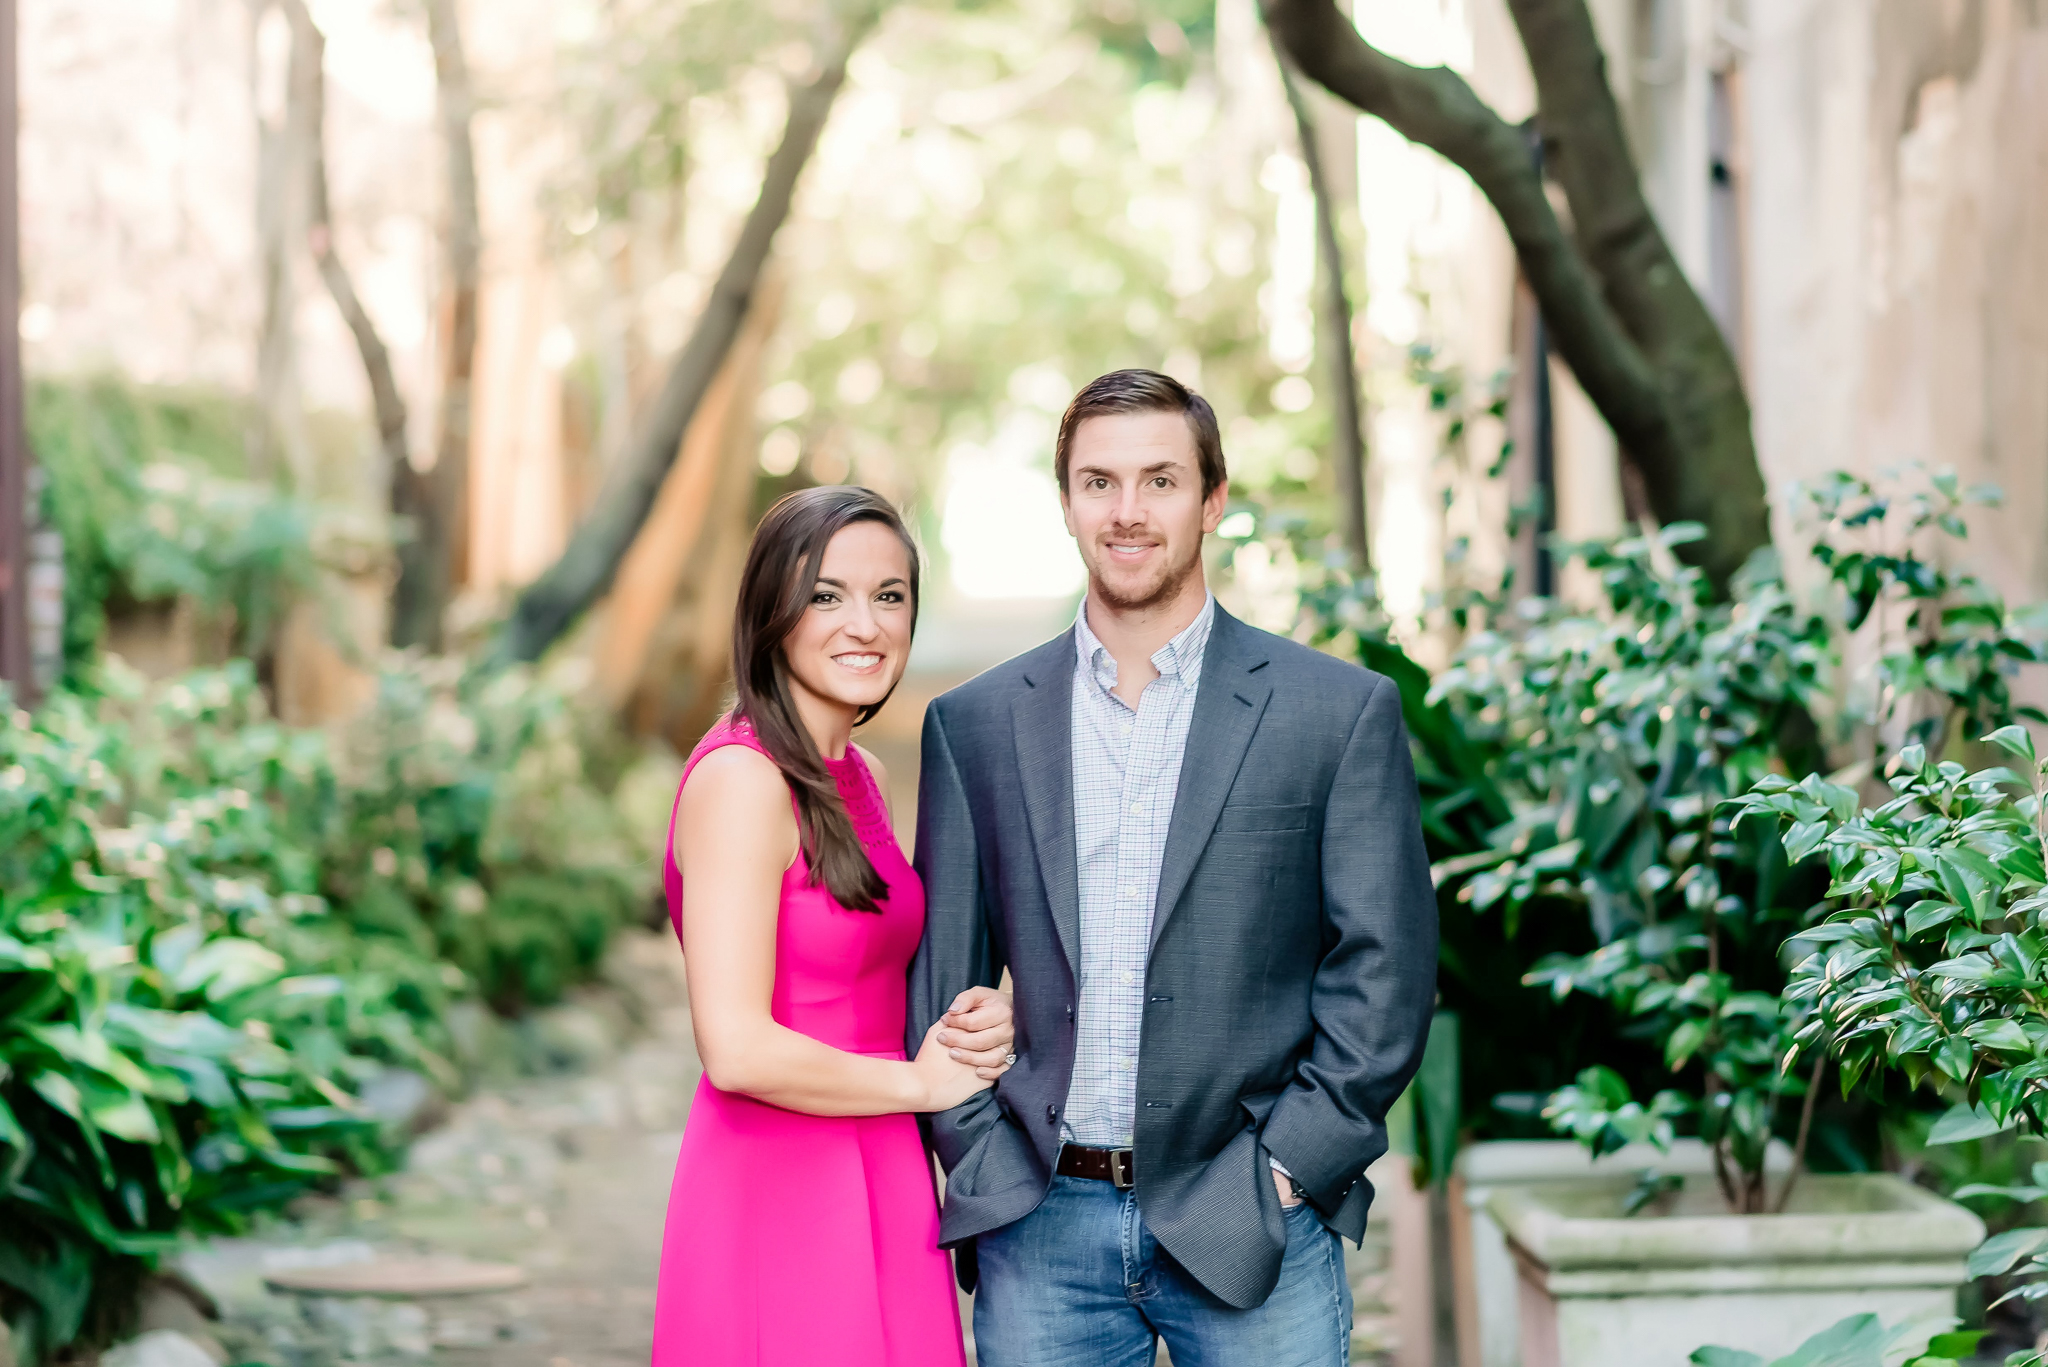 Stylish, romantic, natural and laid back Downtown Engagement Photography, Pink fuchsia dress portraits, Charleston SC engagement Photographer